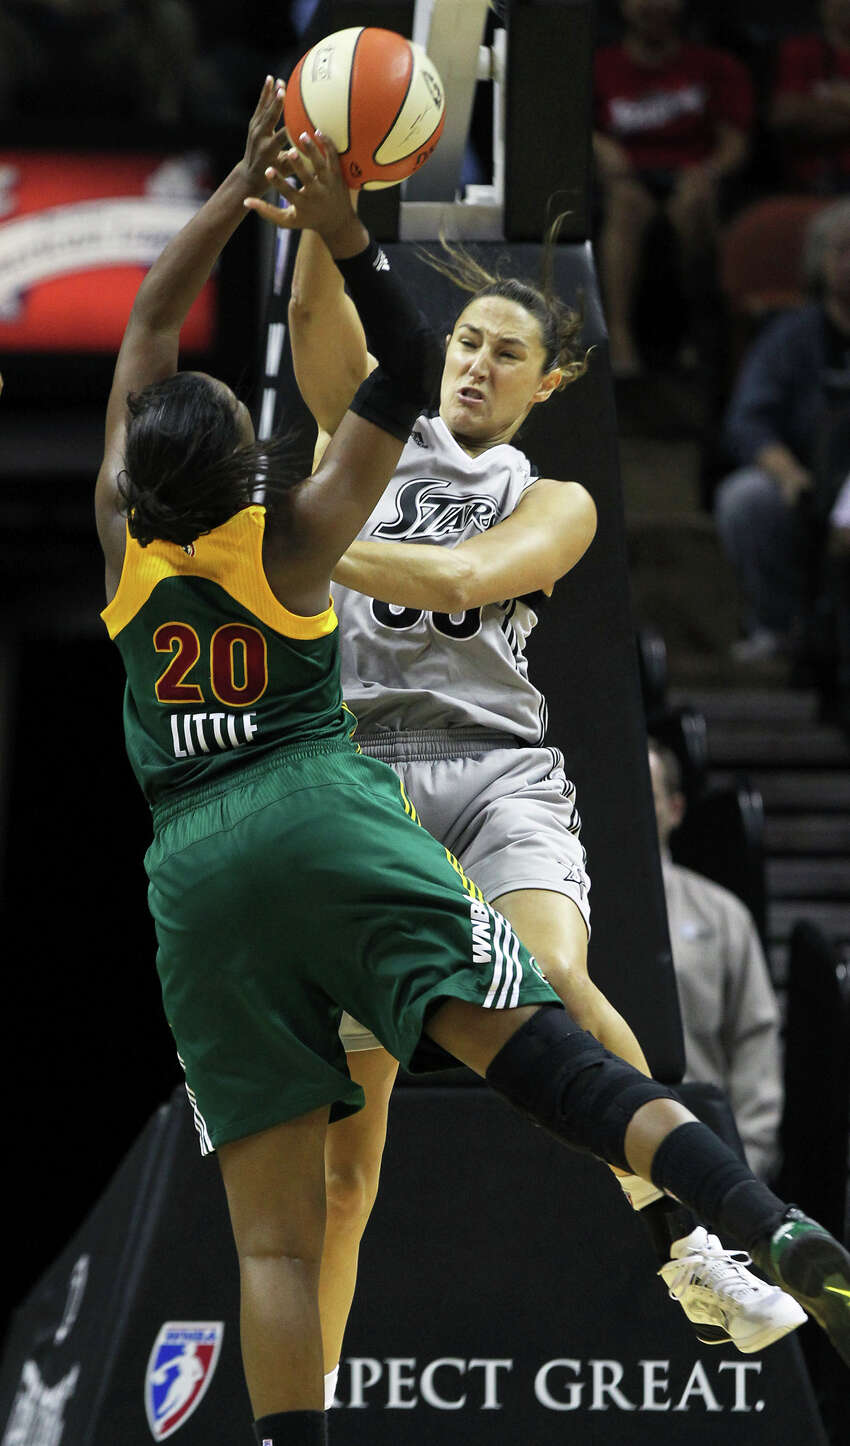 San Antonio's Ruth Riley rejects a shot by Camille Little in the first half as the San Antonio Silver Stars play the Seattle Storm at the AT&T Center on July 14, 2011. Tom Reel/Staff